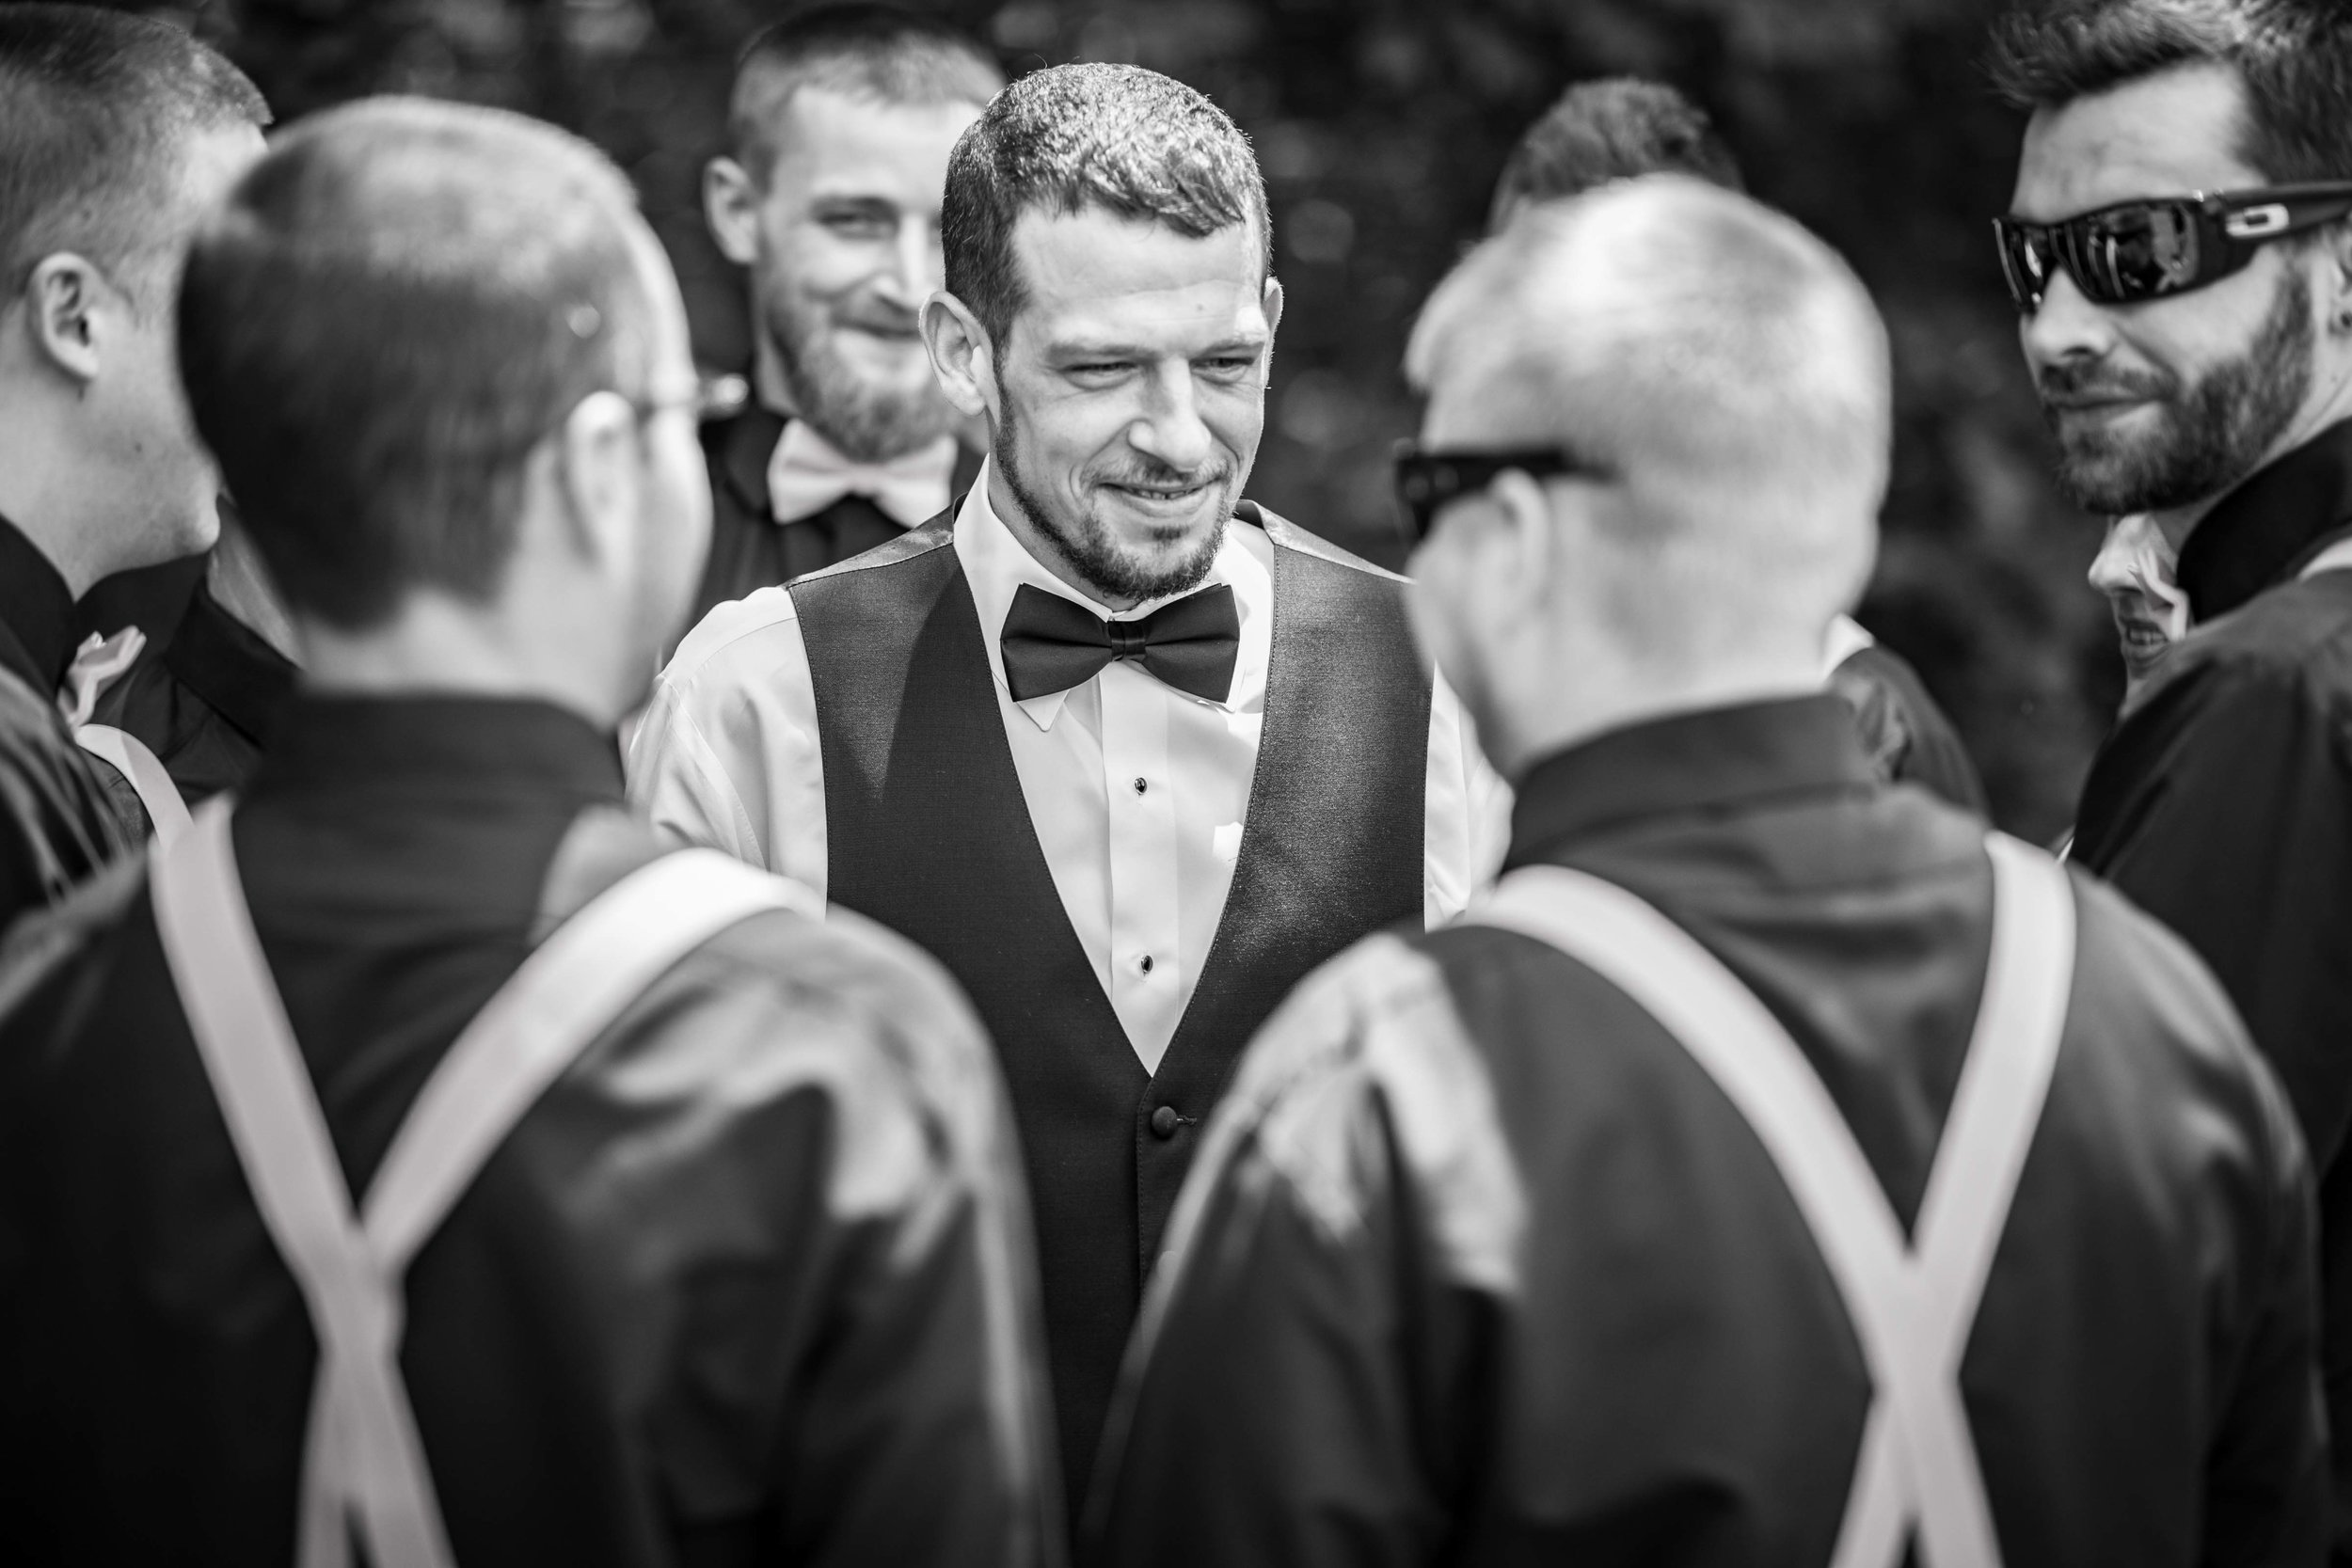 The Groom is surrounded by all his best friends